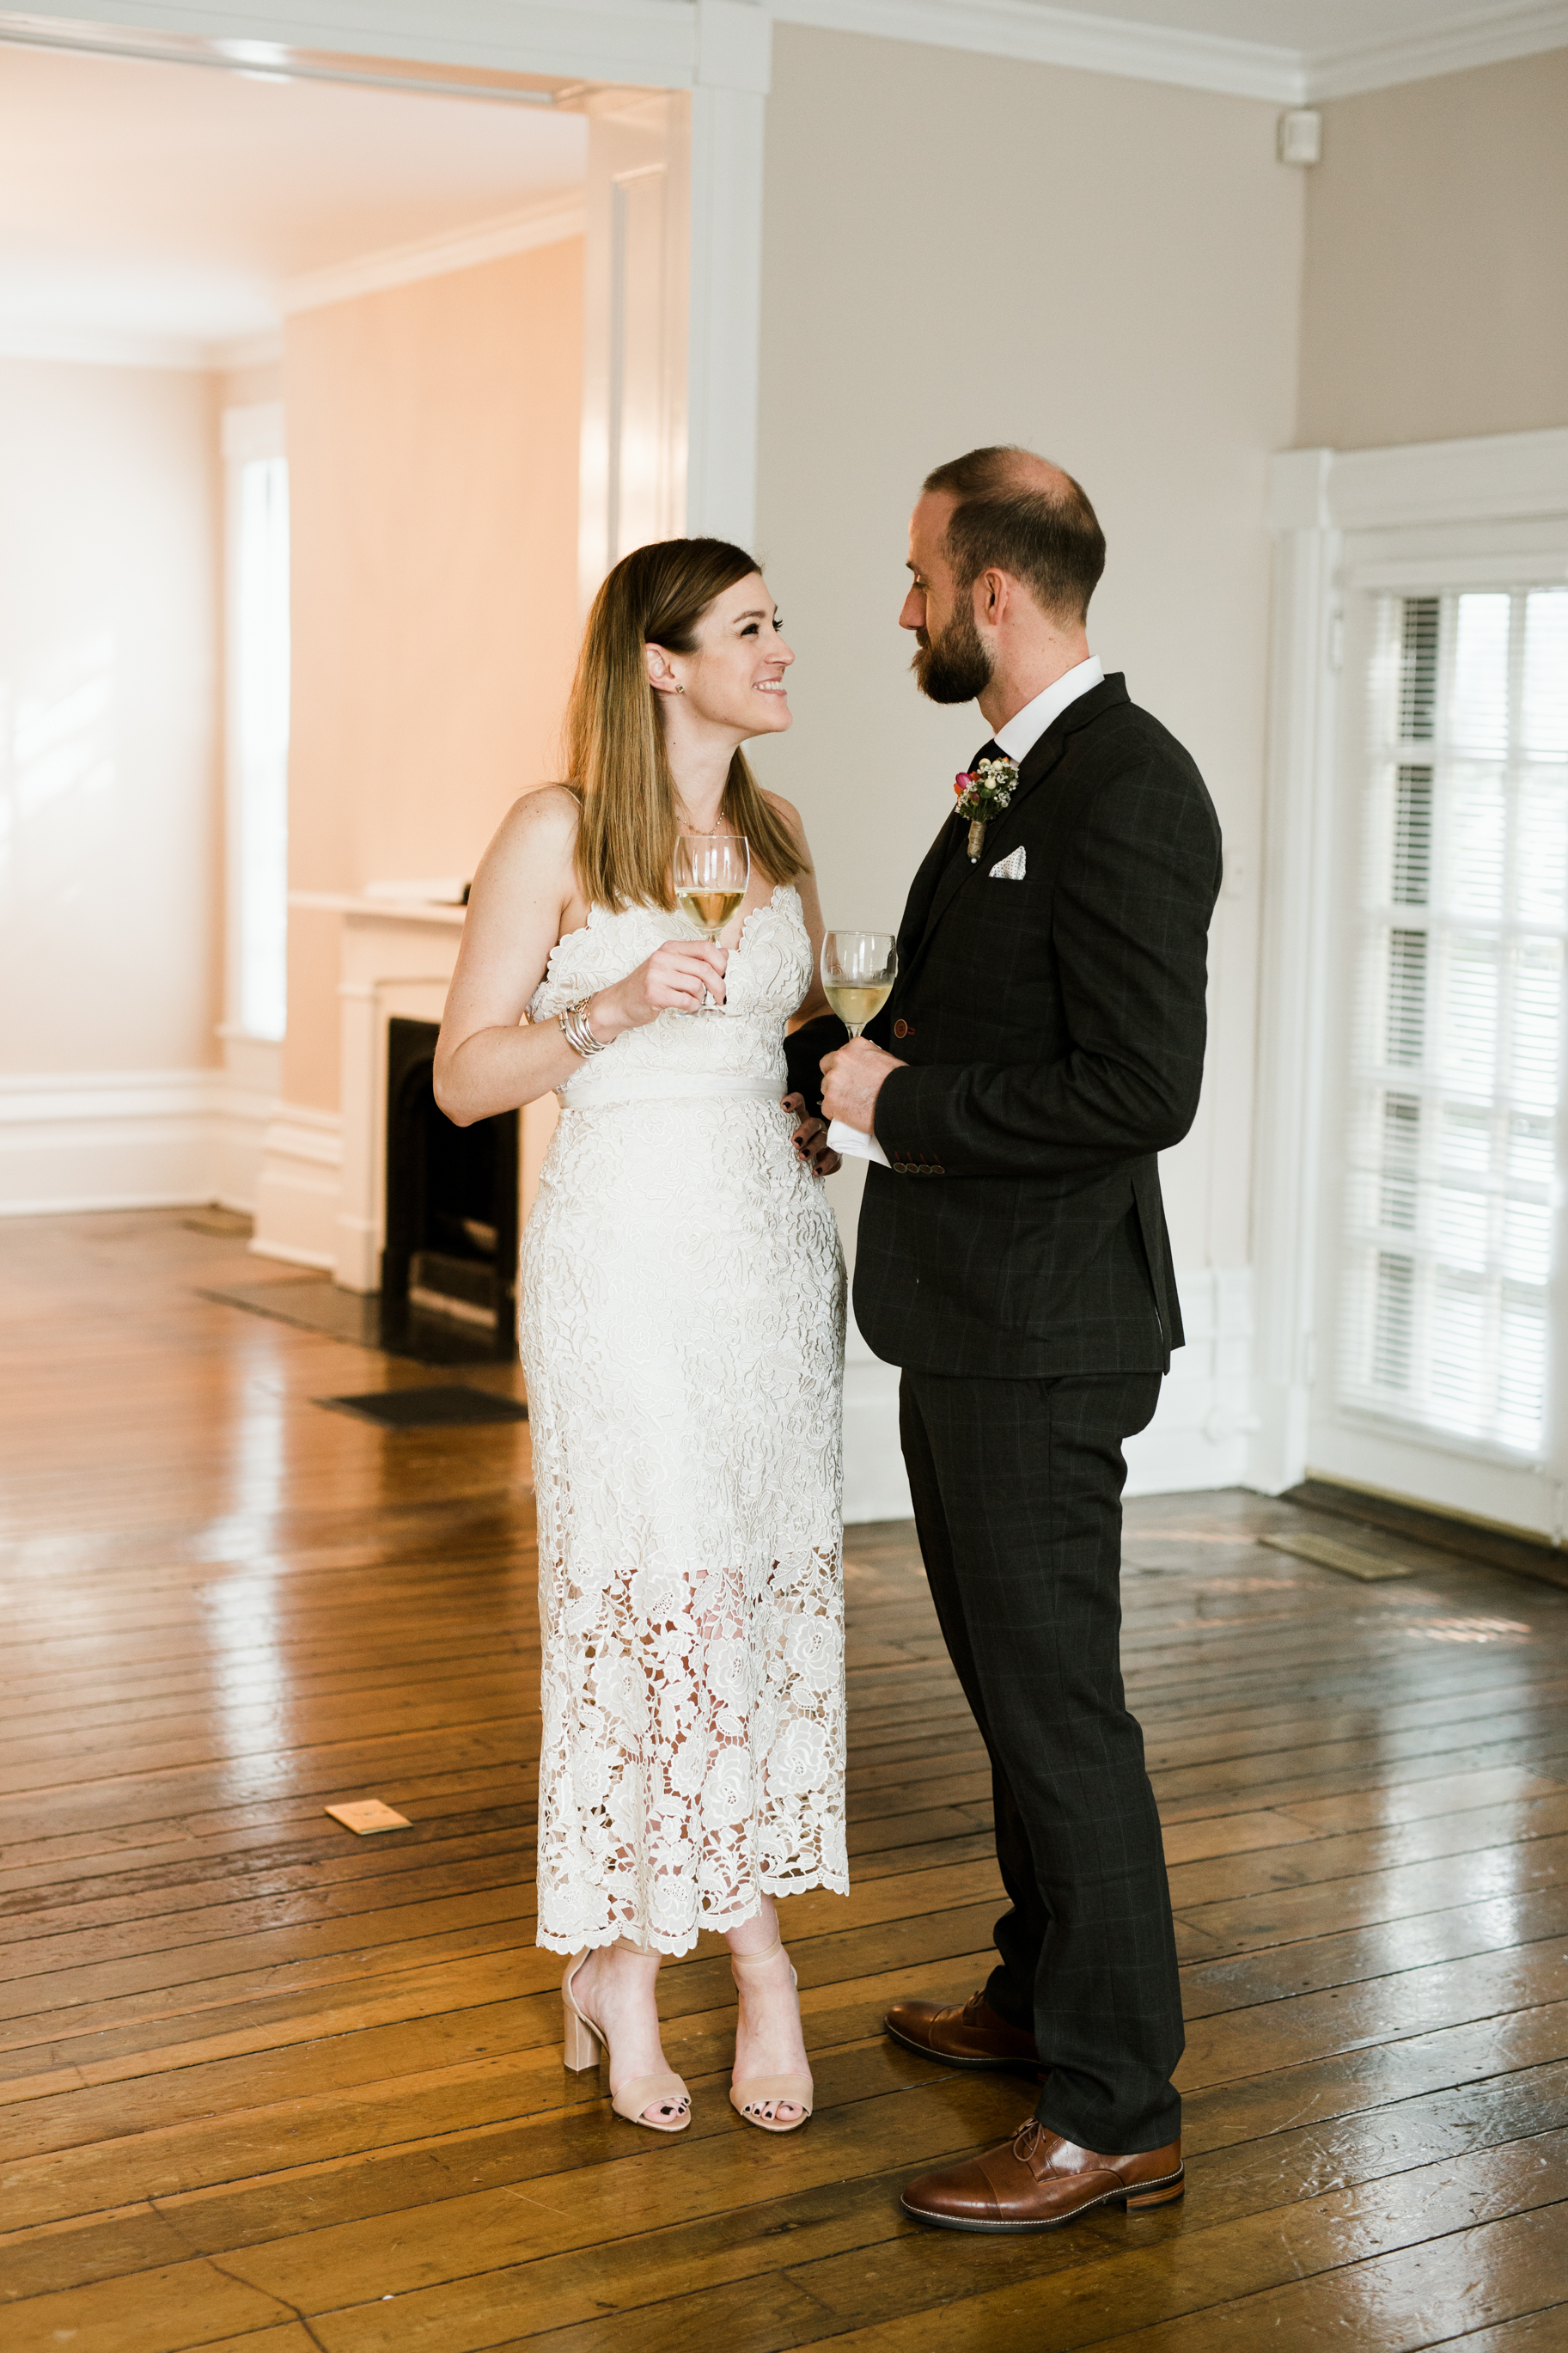 Louisville Courthouse Wedding Louisville Wedding Photographer 2018 Crystal Ludwick Photo Louisville Wedding Photographer Kentucky Wedding Photographer (30 of 76).jpg